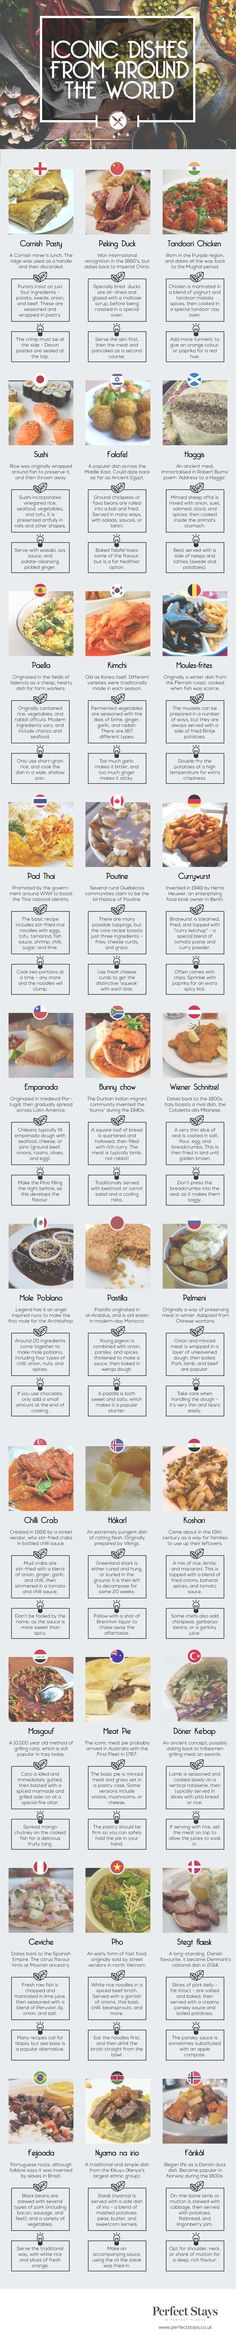 The Most Iconic Dishes From Around The World